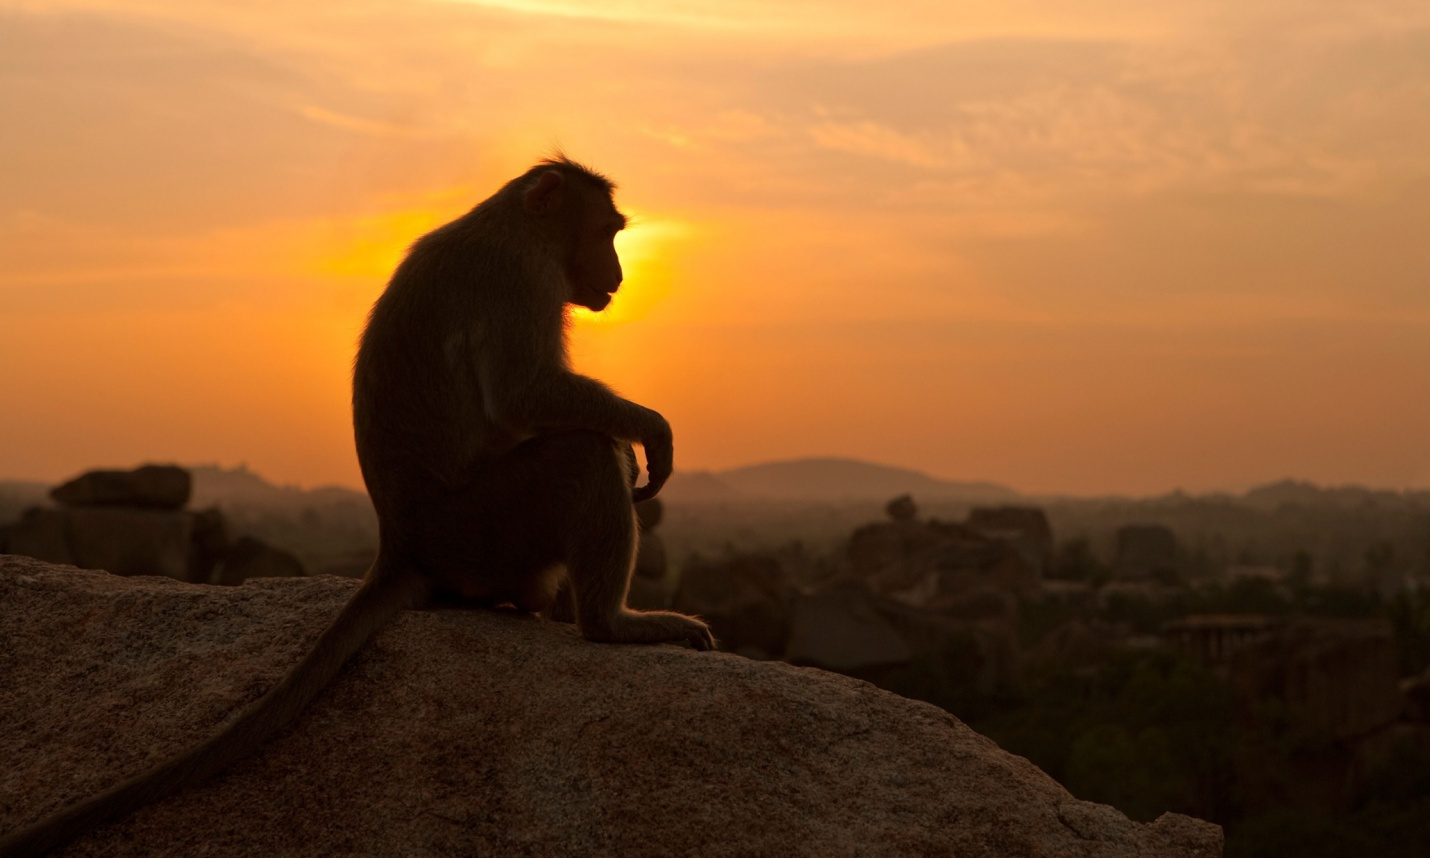 Sunset at Hampi - Hemakunta Hill